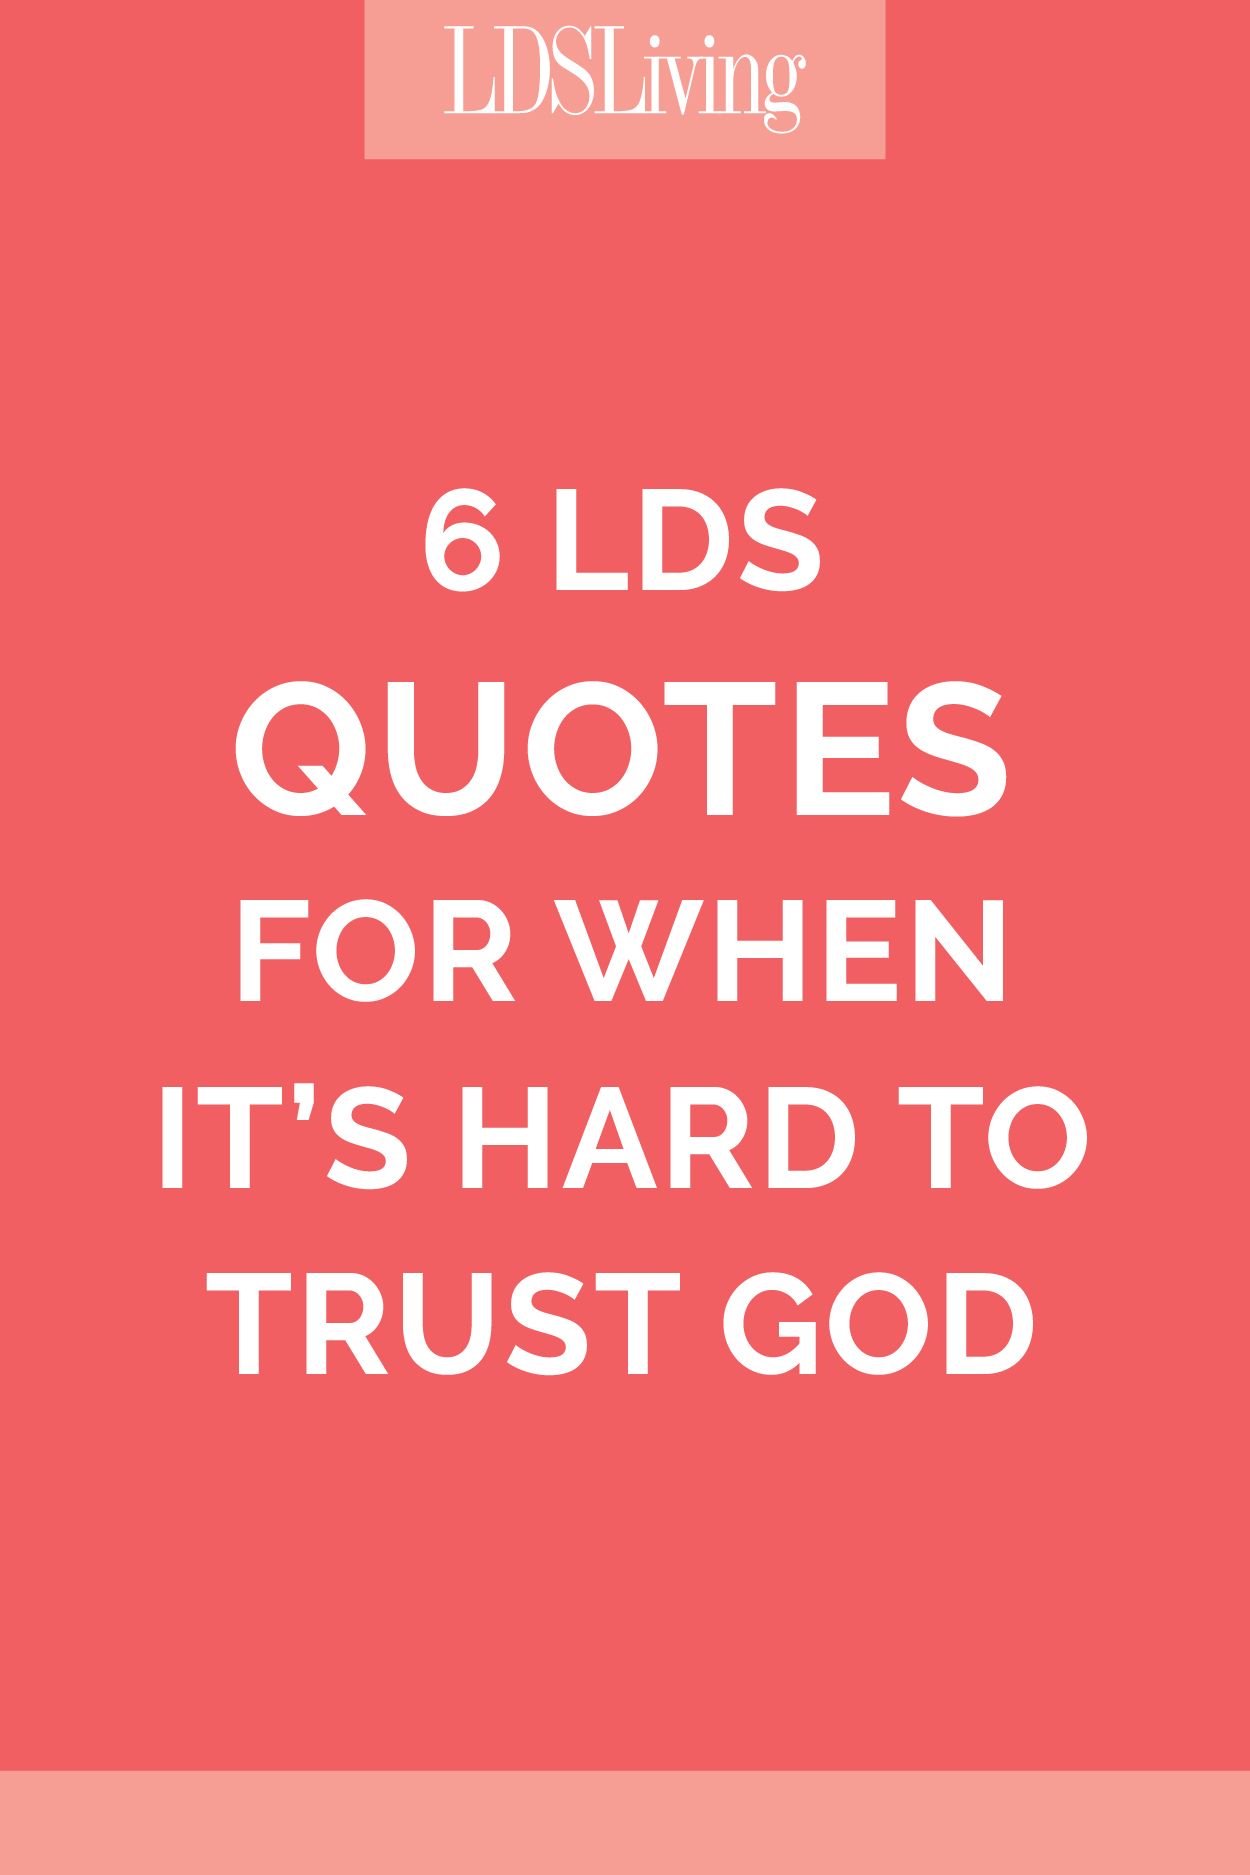 Trust Quotes 6 Lds Quotes For When It's Hard To Trust God  Lds Living